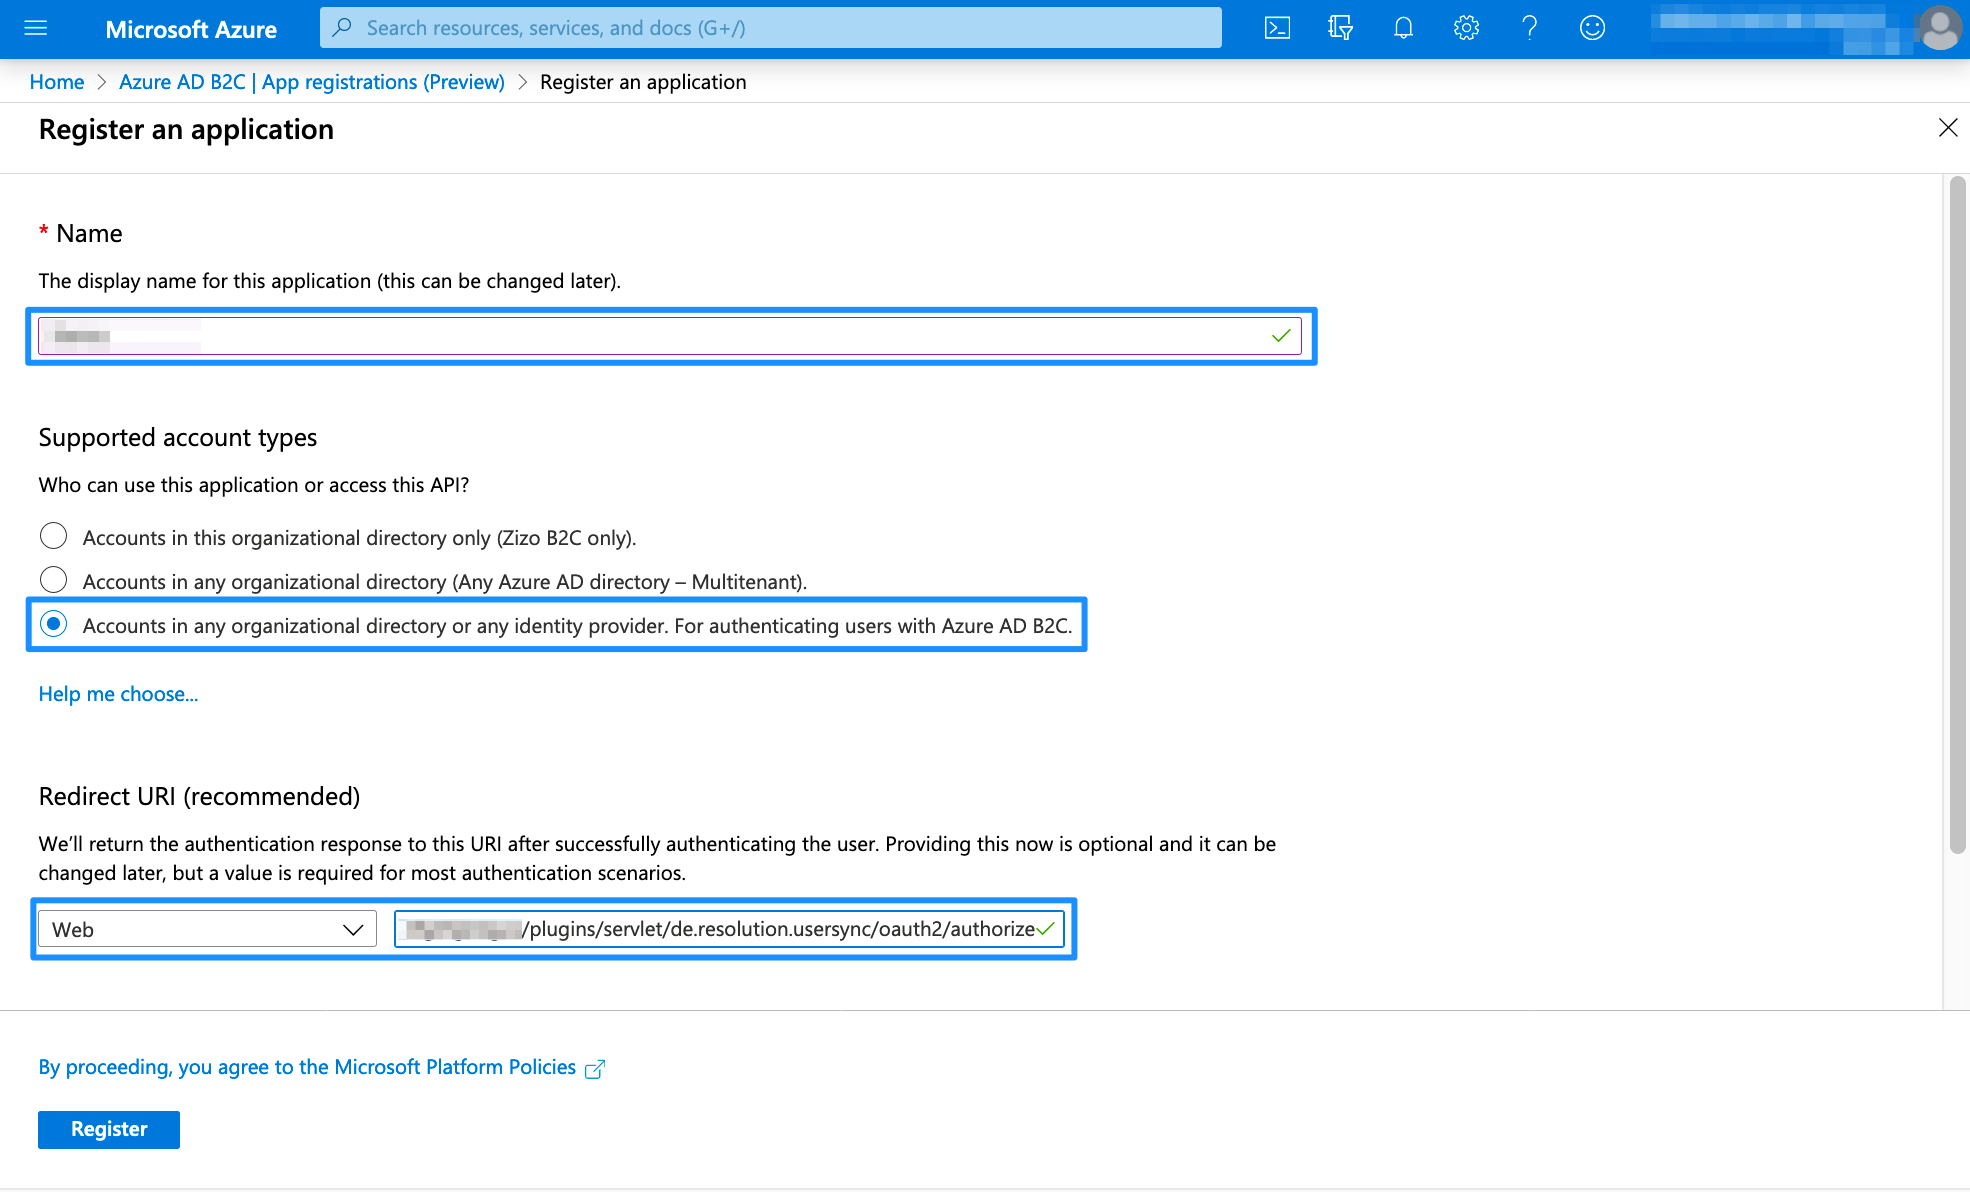 Azure AD B2C Register an app